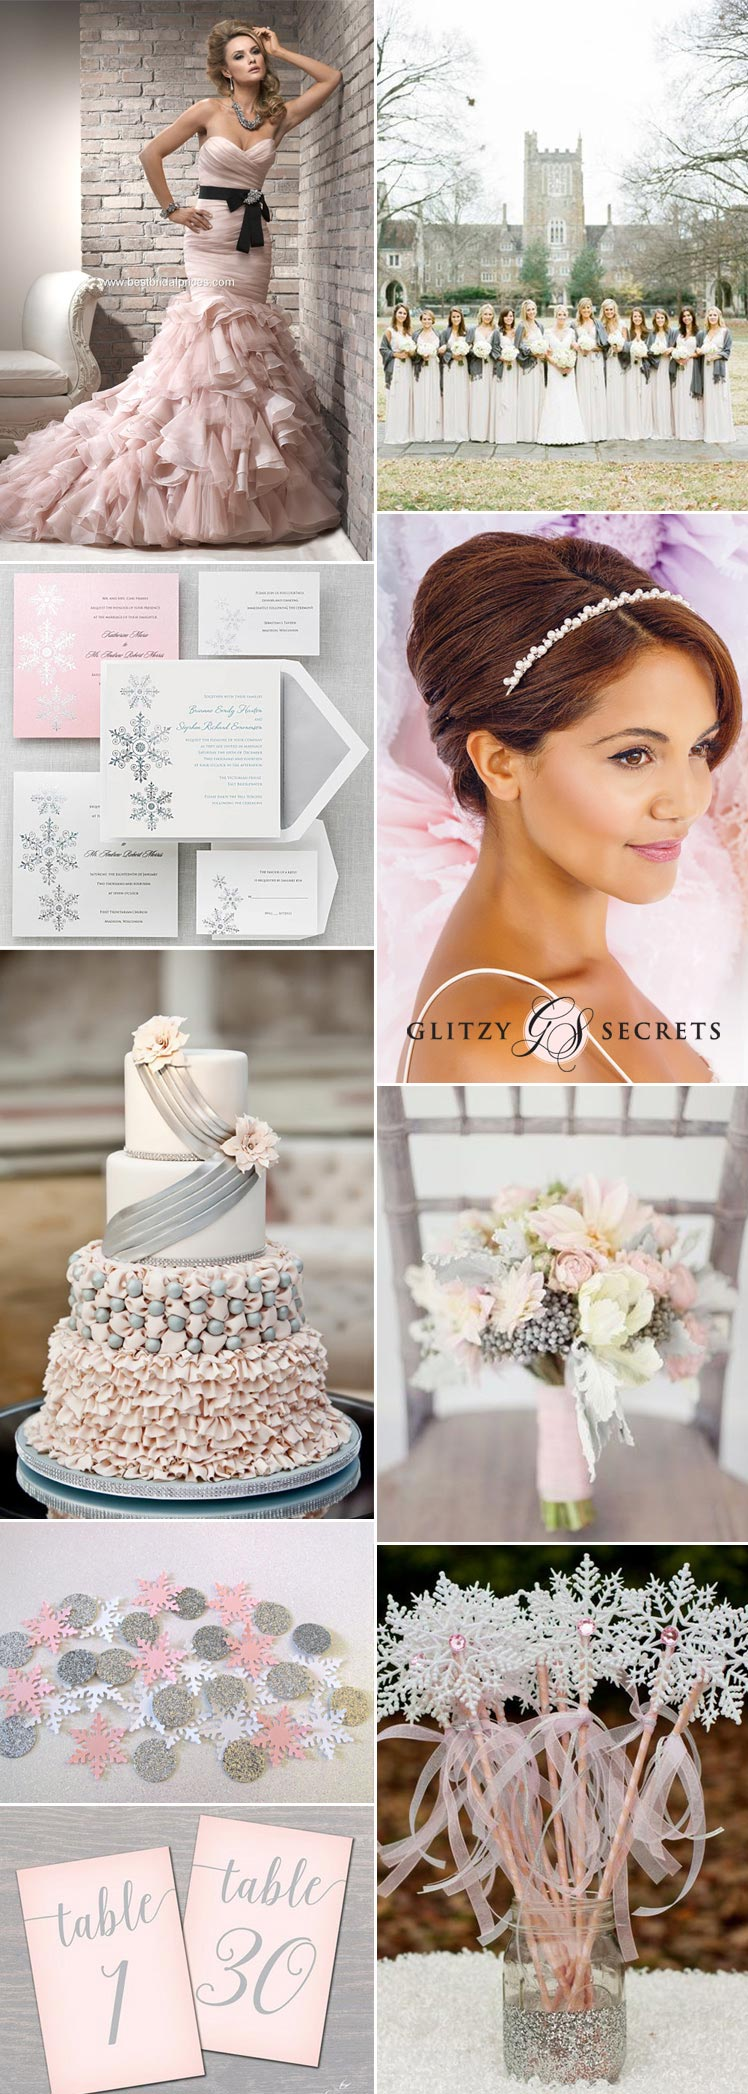 fabulous pink and silver winter wonderland wedding ideas